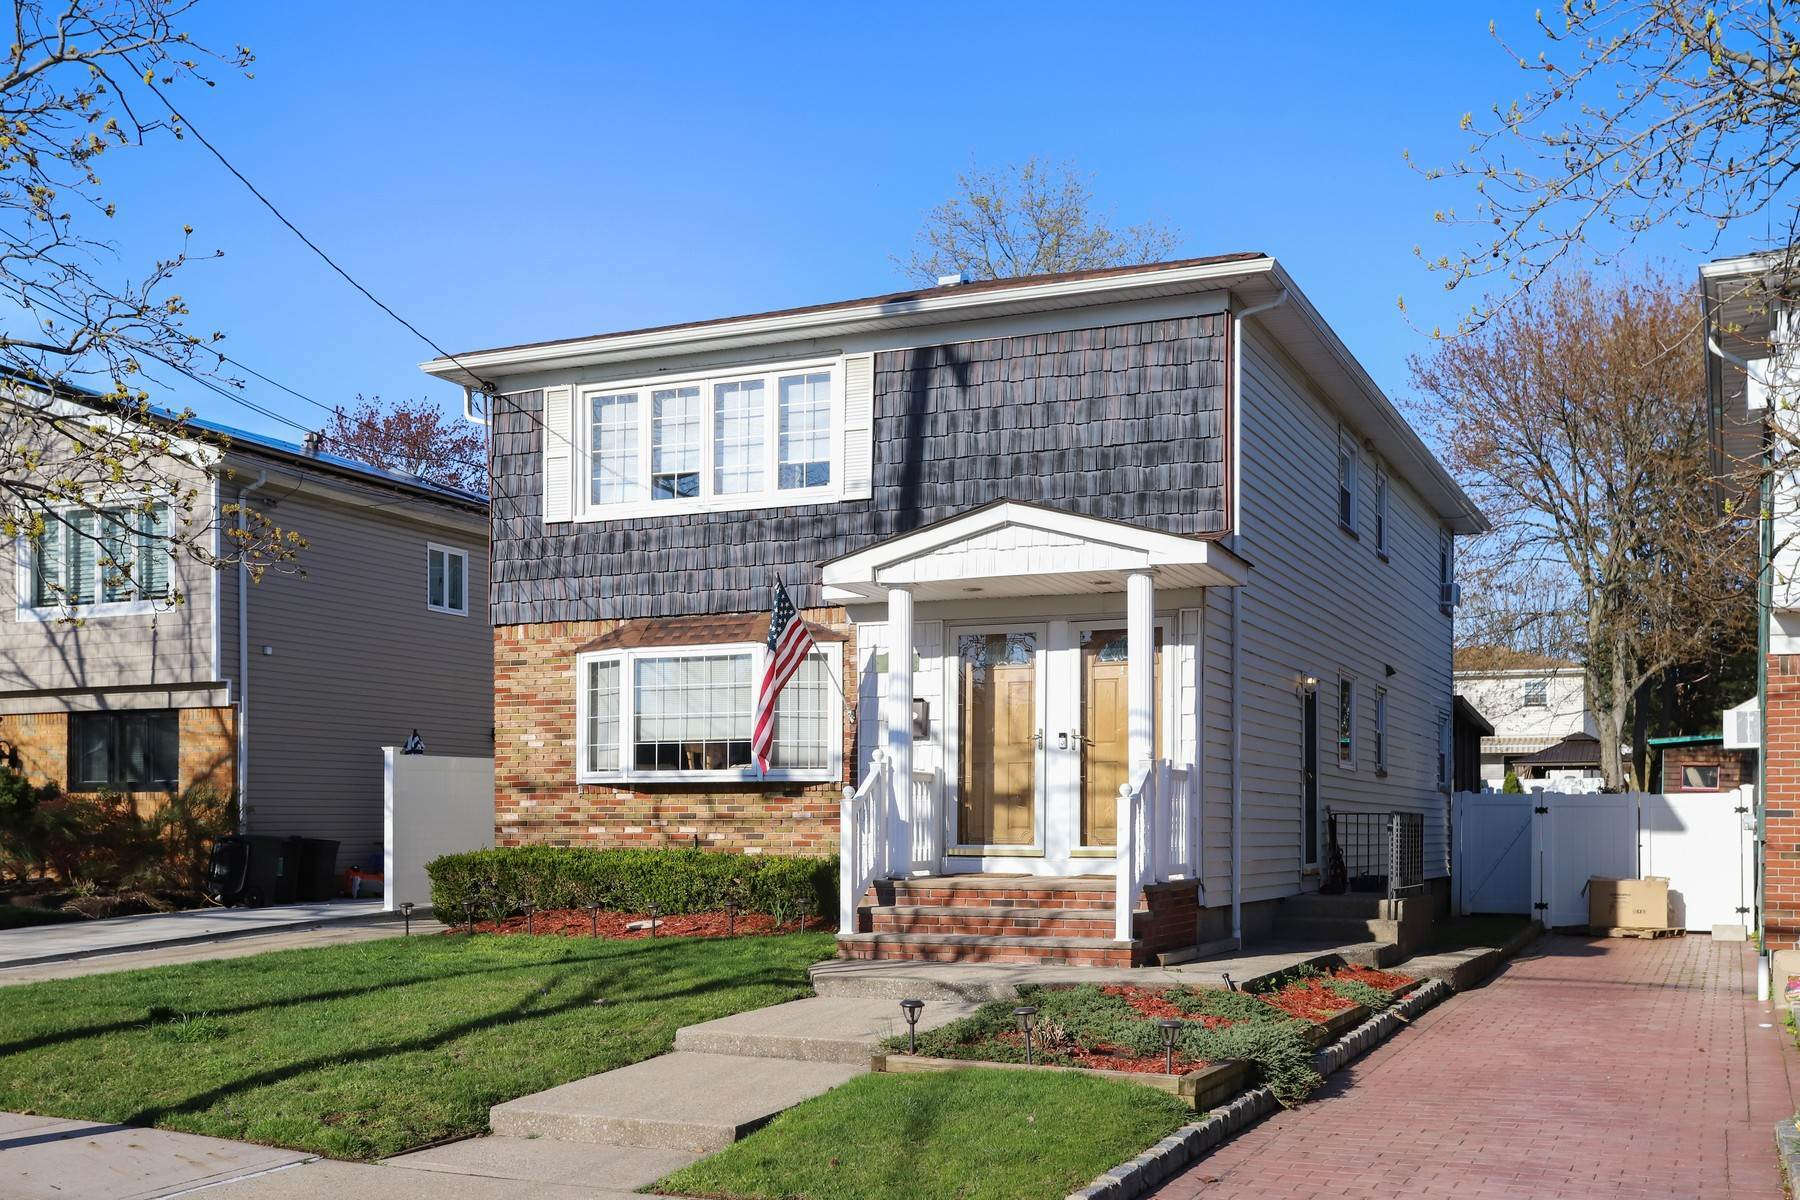 Multi-Family Homes for Sale at Turn Key 6 over 6 Great Kills Two Family 23 Fern Avenue Staten Island, New York 10308 United States